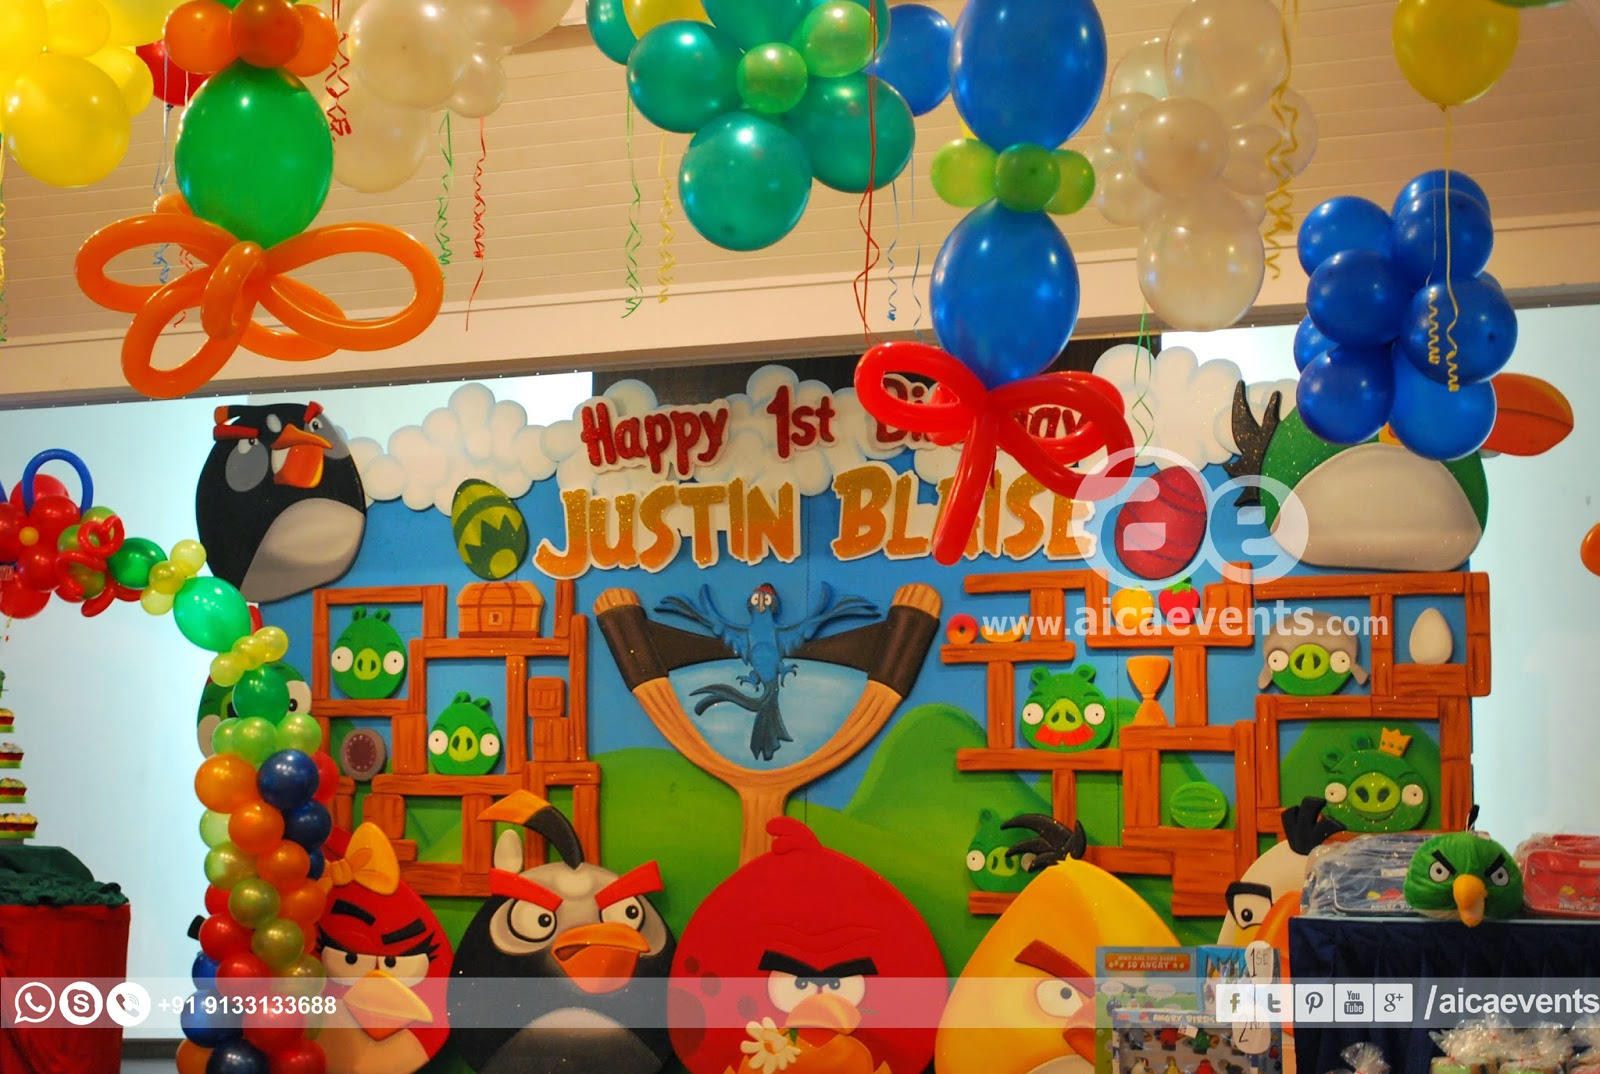 Aicaevents angry bird theme decors for birthday parties for Angry bird birthday decoration ideas